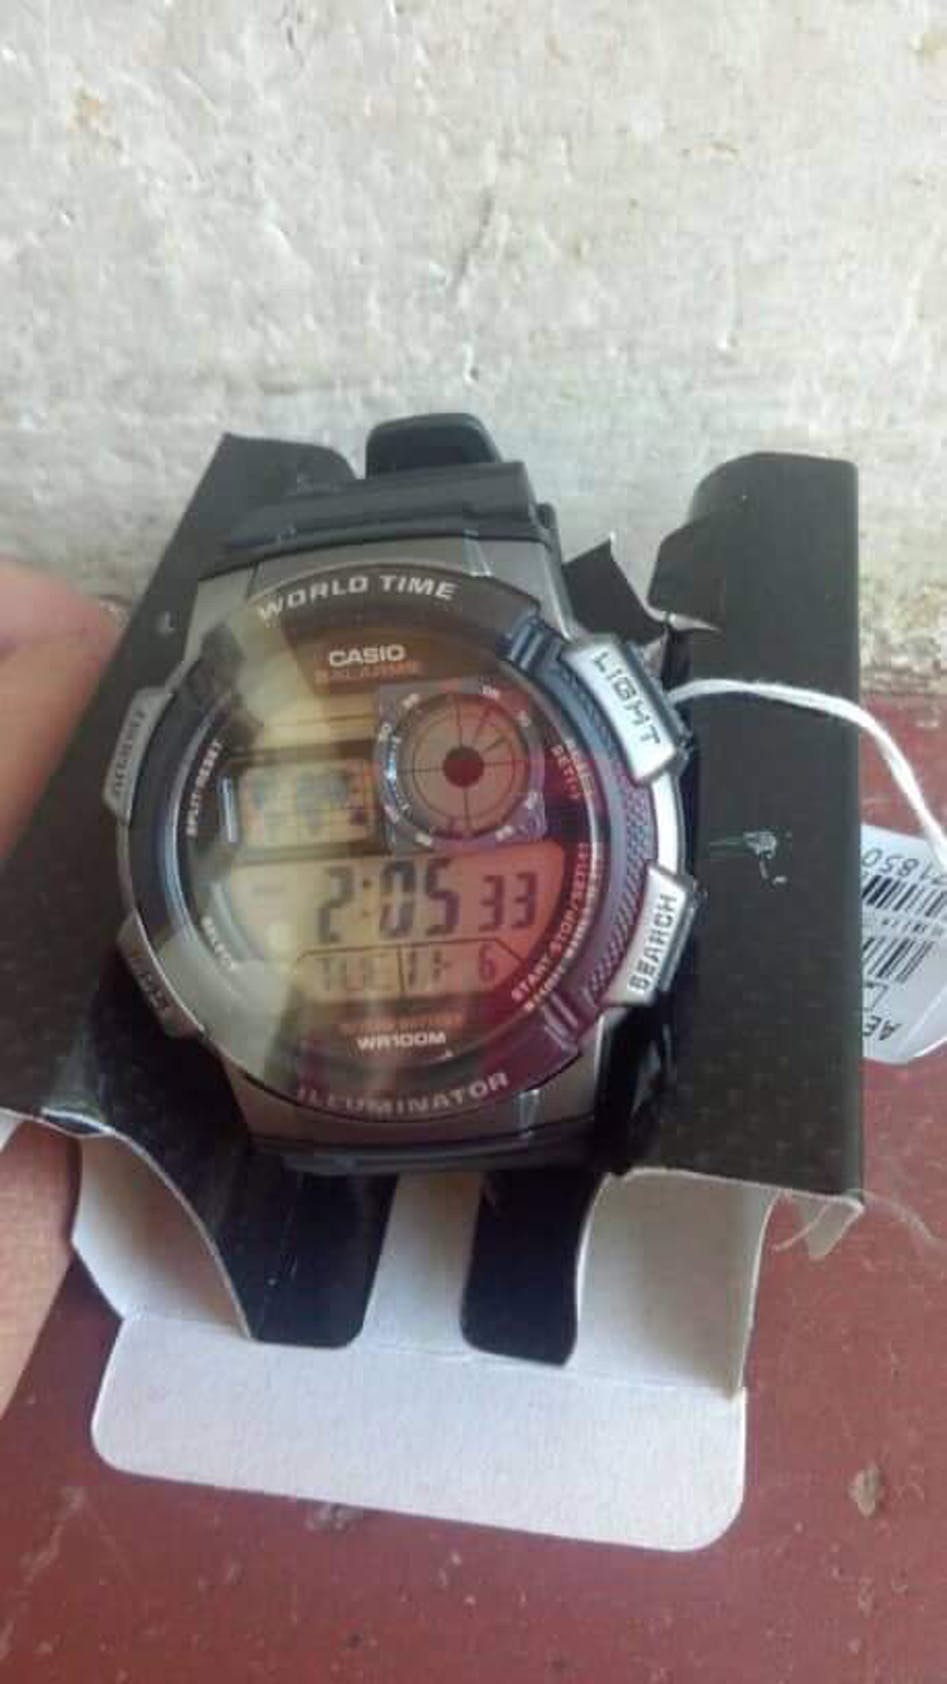 Casio Ae 1000w 1b Black Resin Strap Watch For Men Portal World Time 1000wd Original User Picture